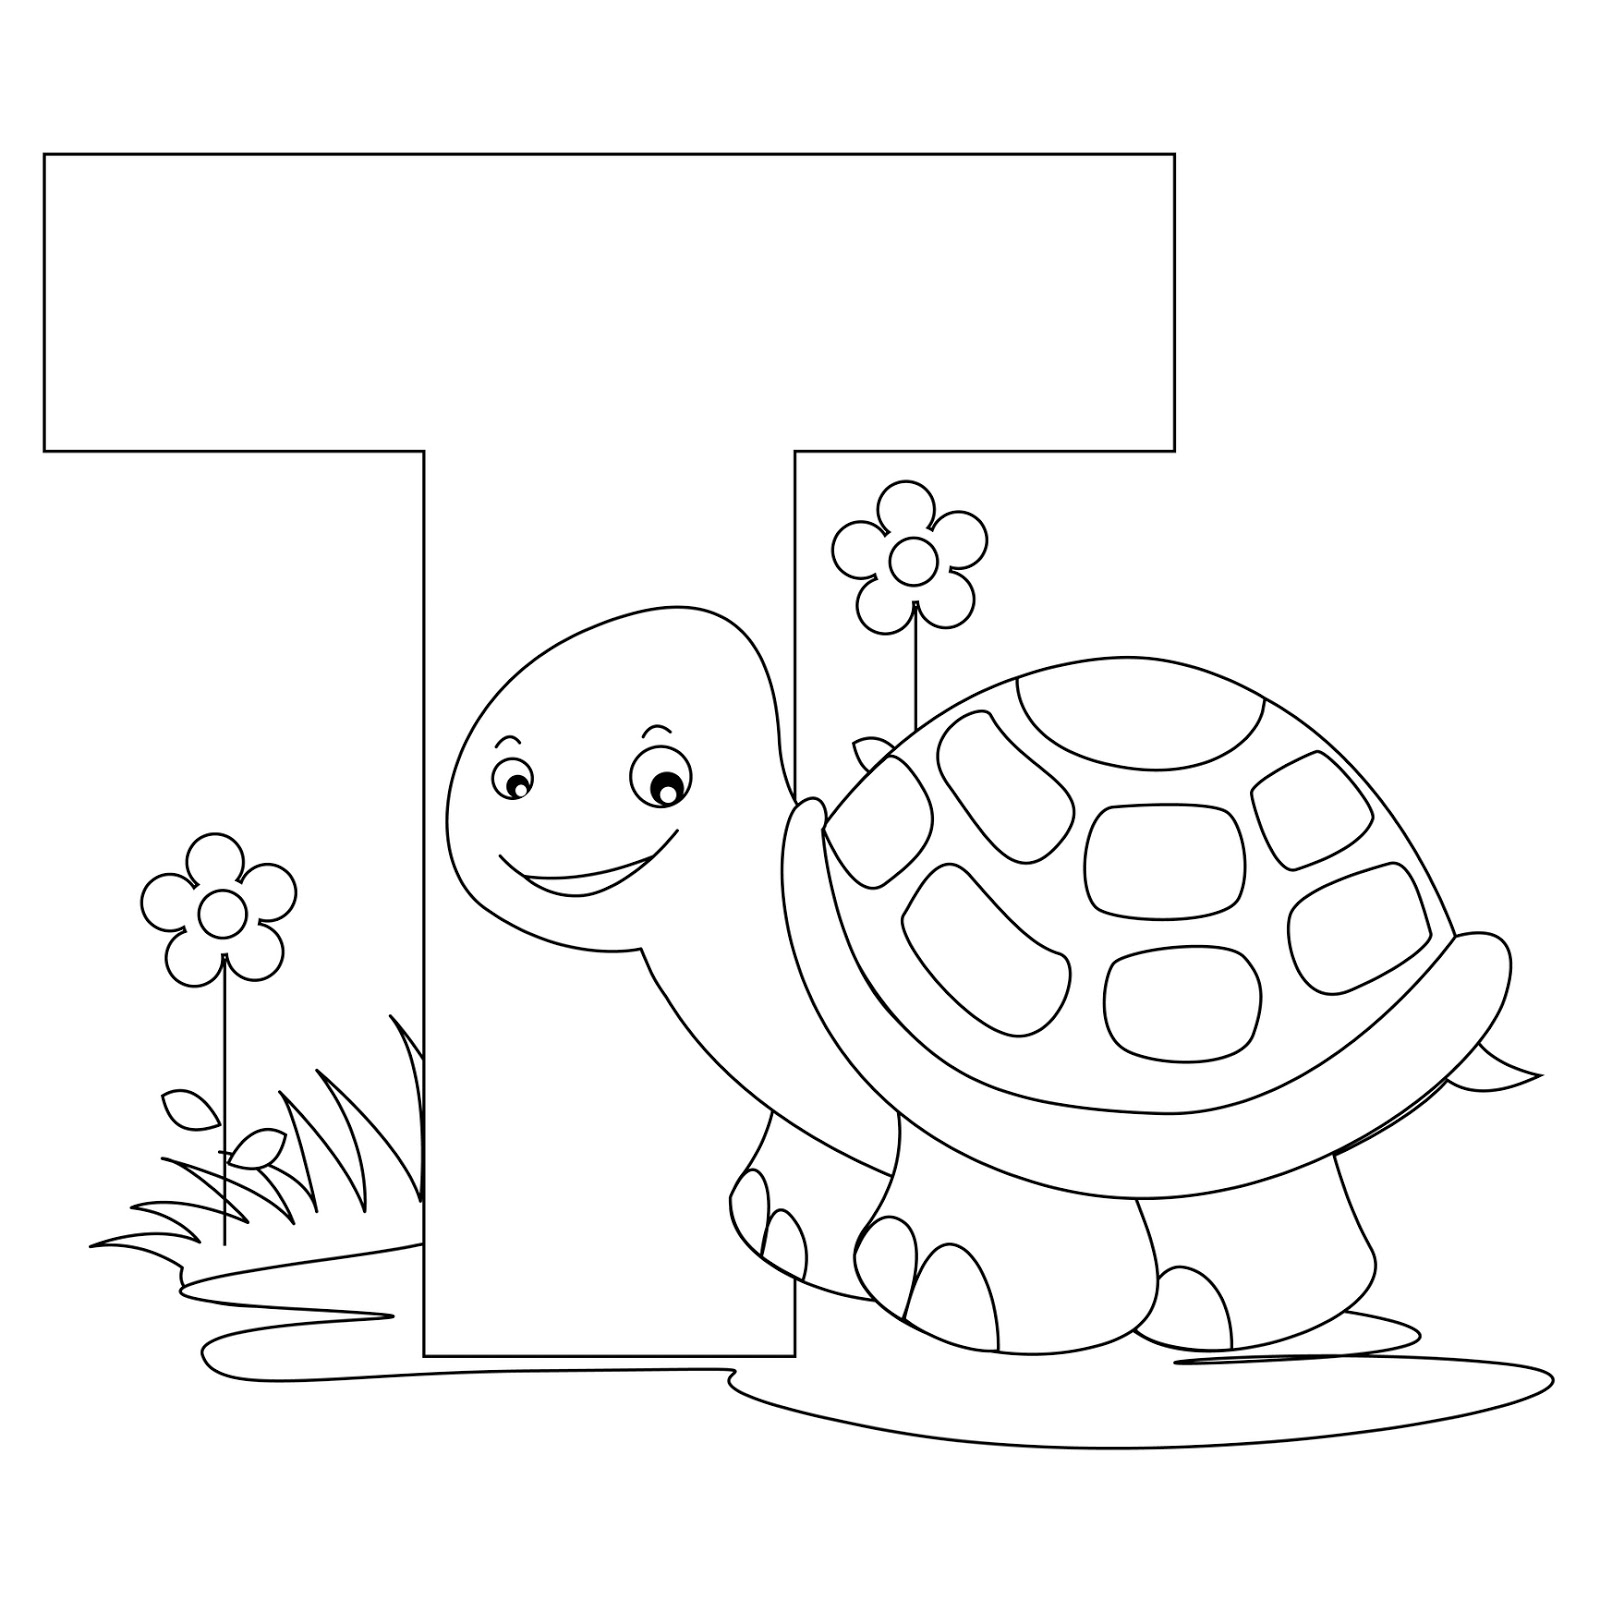 coloring pages alphabet free abc coloring pages getcoloringpagescom free coloring pages alphabet